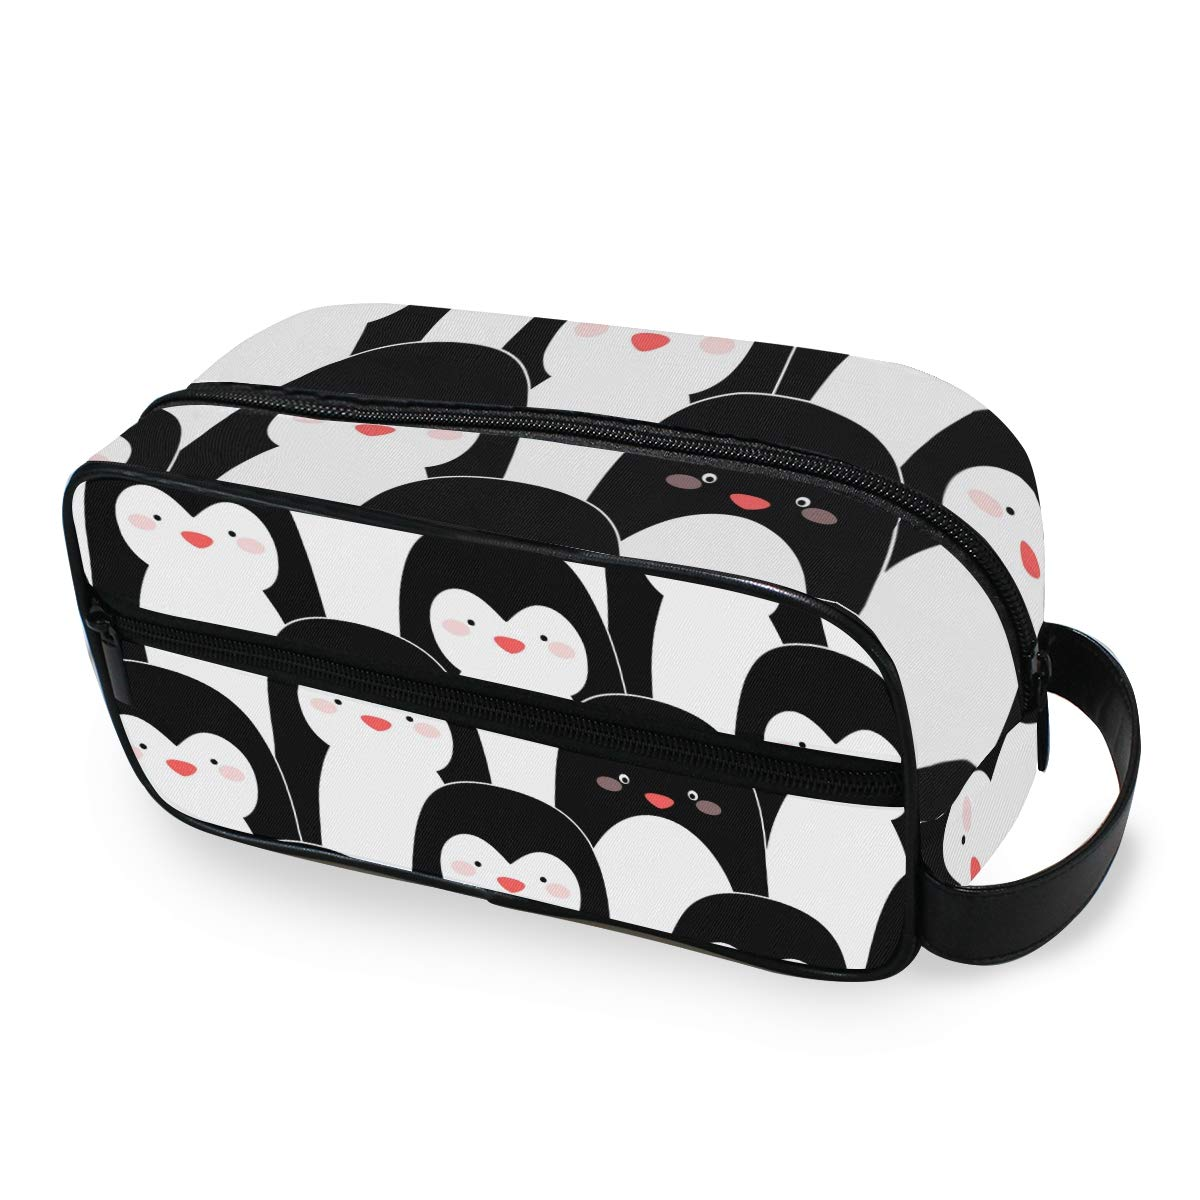 ZZAEO Cute Cartoon Seamless Penguins Small Makeup Bag - Dopp Kit with Handle Cute Portable Women Toiletry Cosmetic Organizer